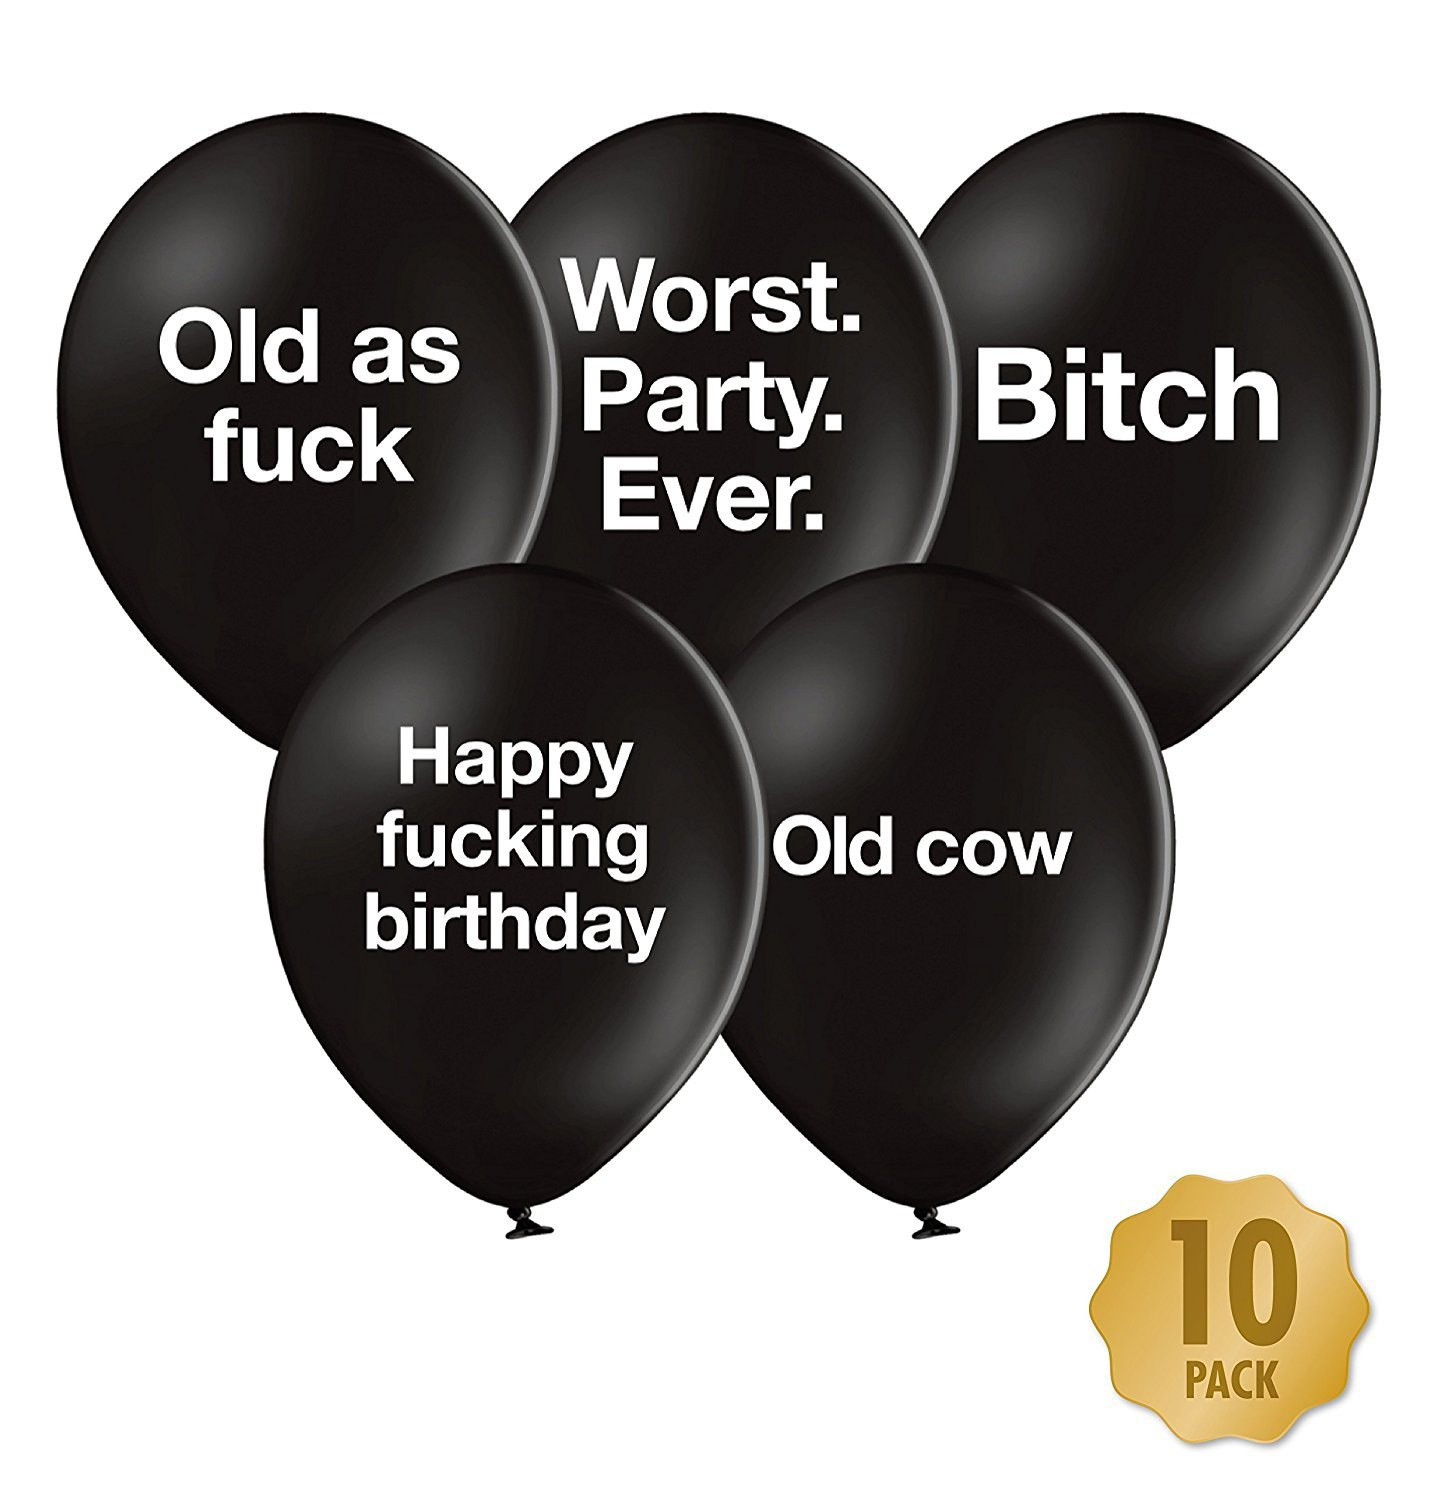 Abusive Birthday Balloons